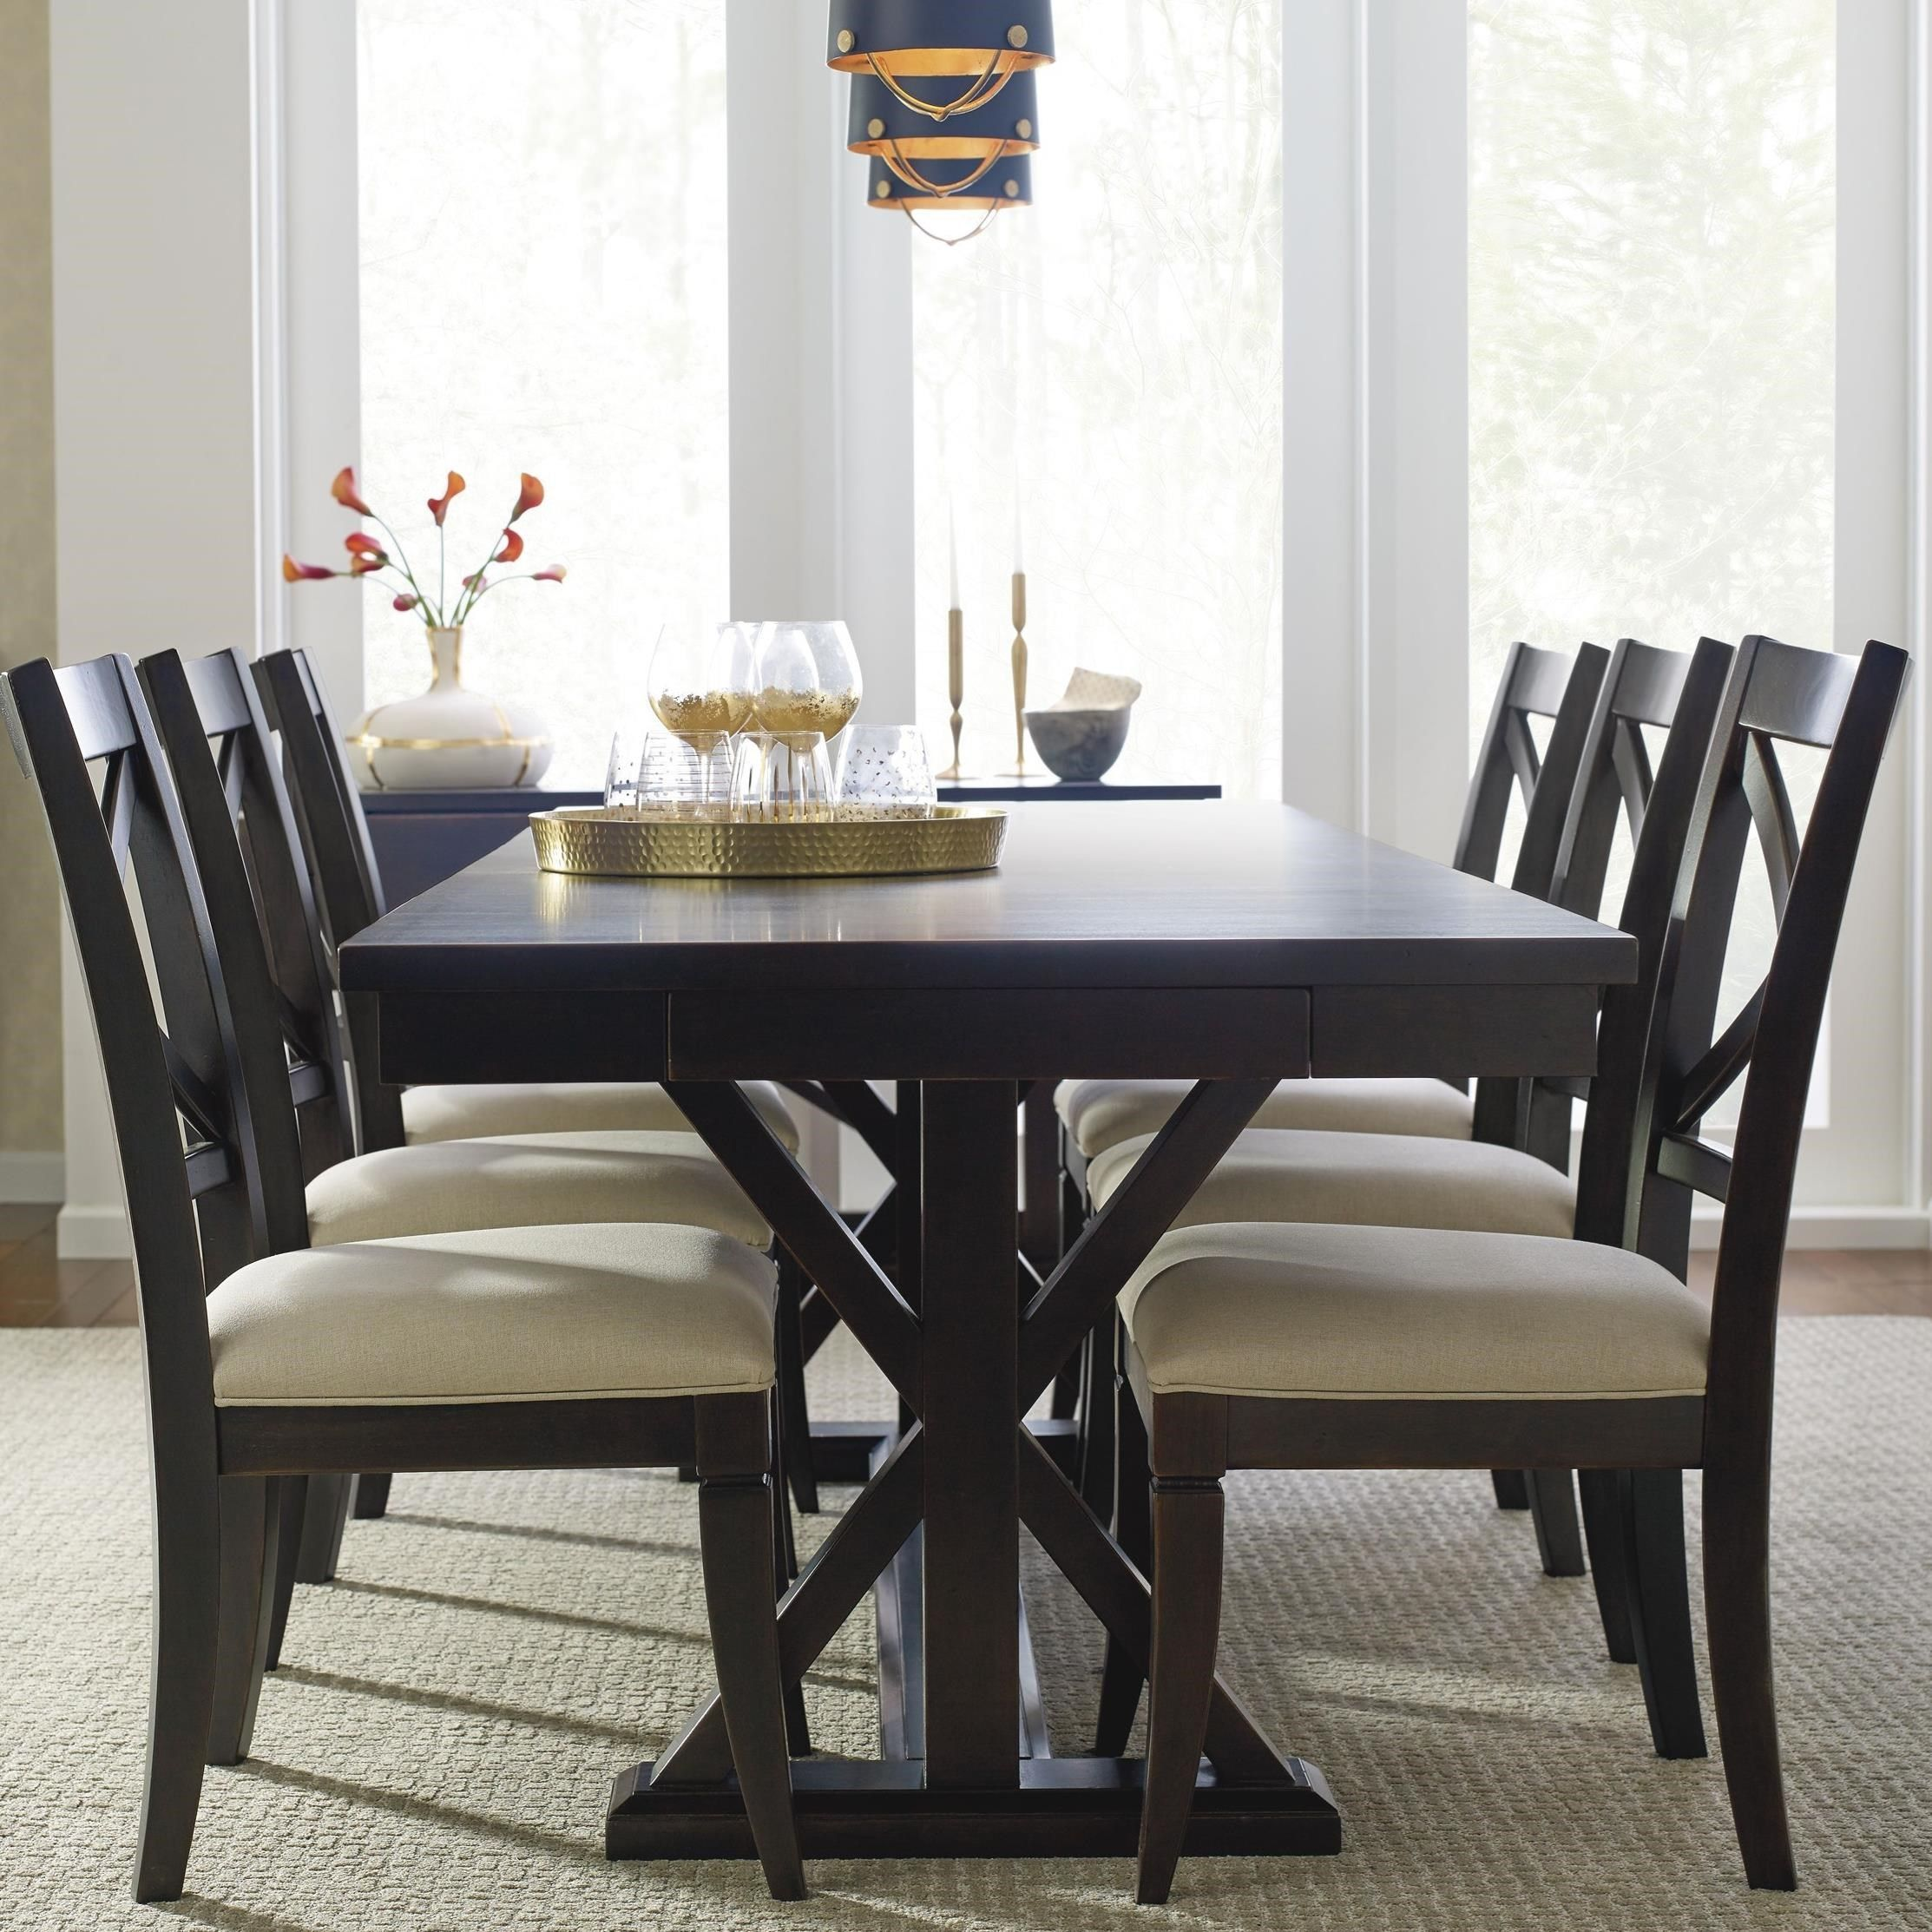 Everyday Dining Trestle Table And 6 Upholstered Chairs By Rachael